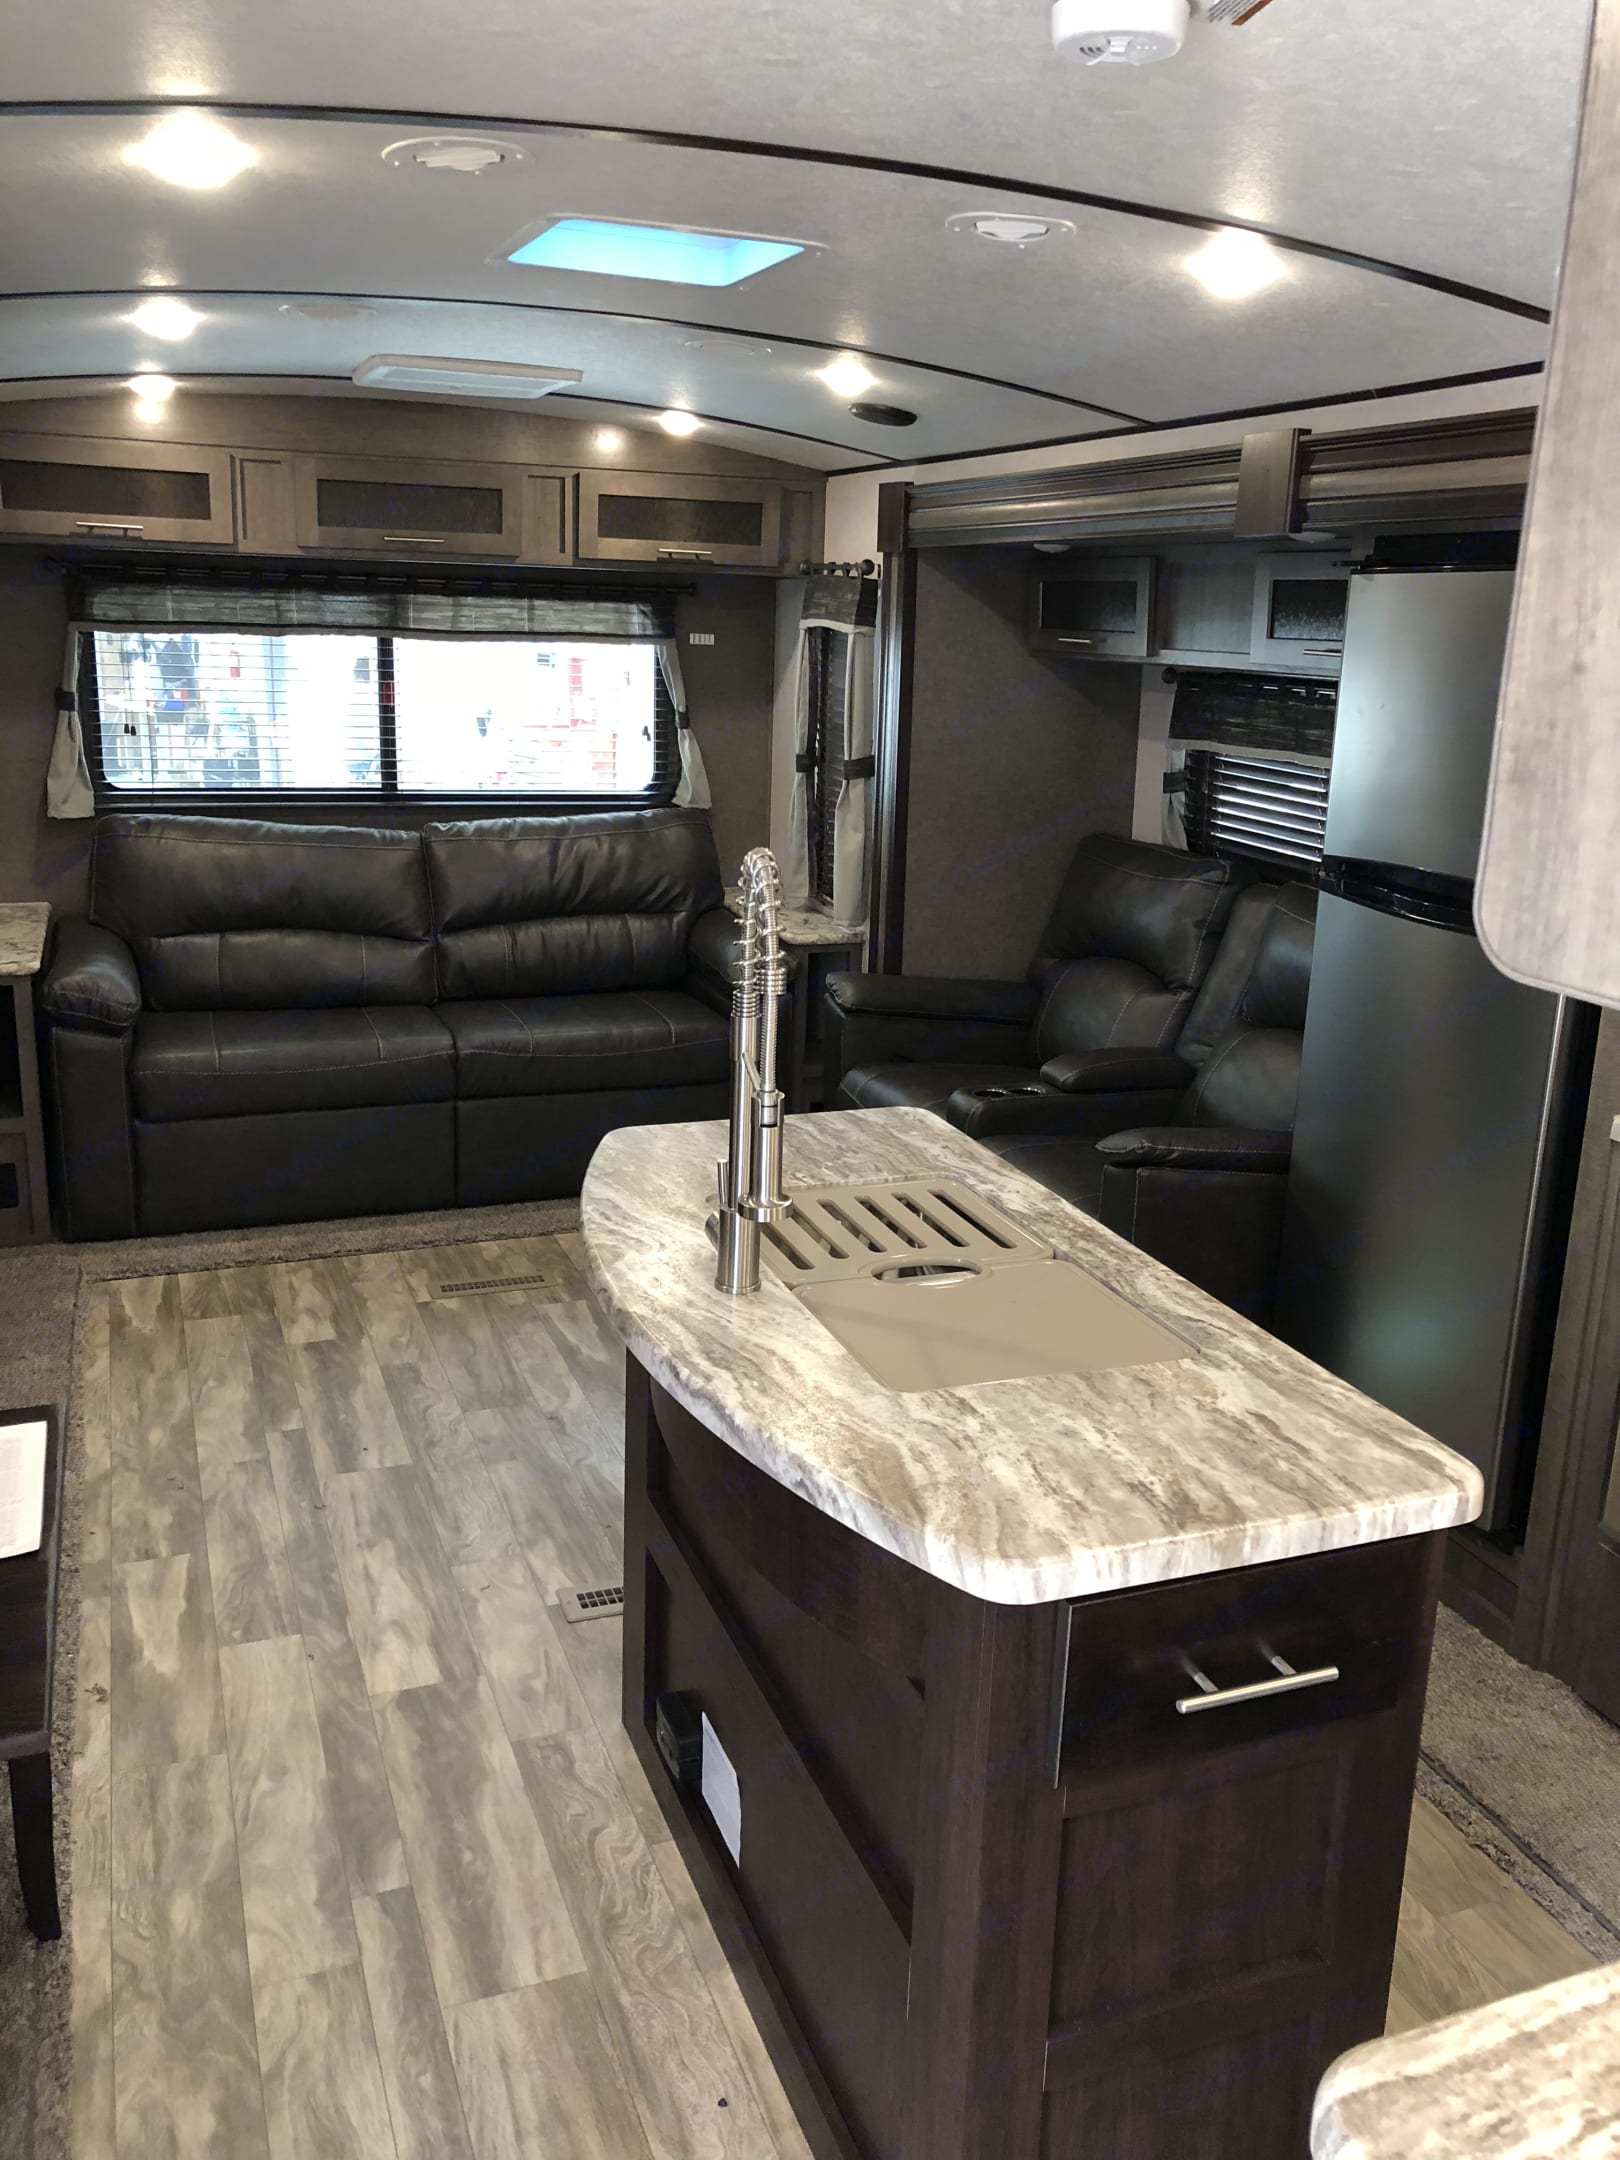 With two living are slide outs, the living area is very comfortable and spacious. The couch makes into a queen bed. Theatre seating to watch TV in complete comfort. . Forest River Surveyor 2019